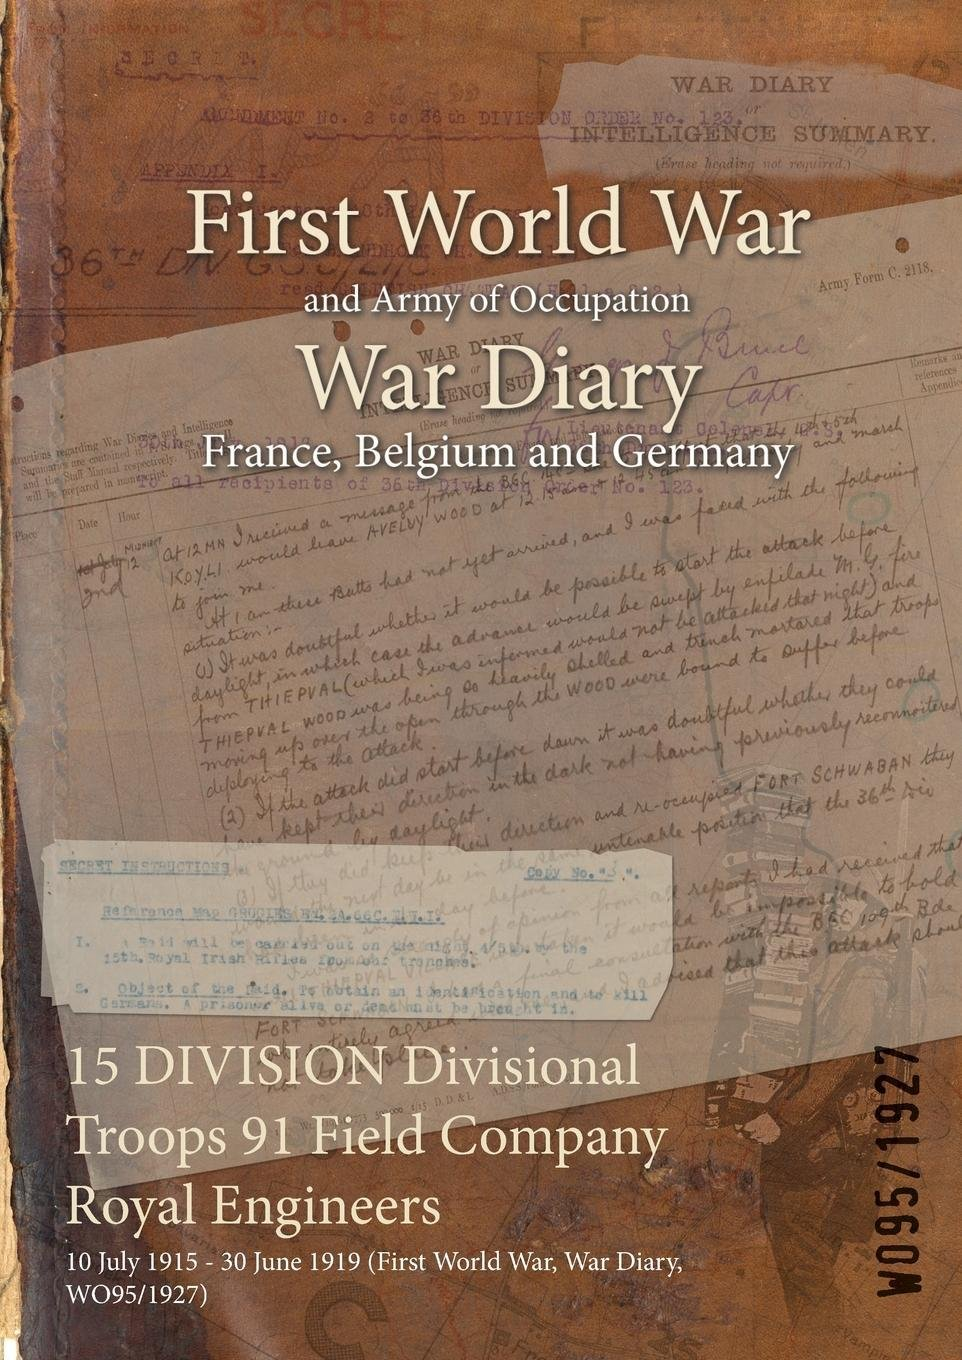 Download 15 Division Divisional Troops 91 Field Company Royal Engineers: 10 July 1915 - 30 June 1919 (First World War, War Diary, Wo95/1927) PDF